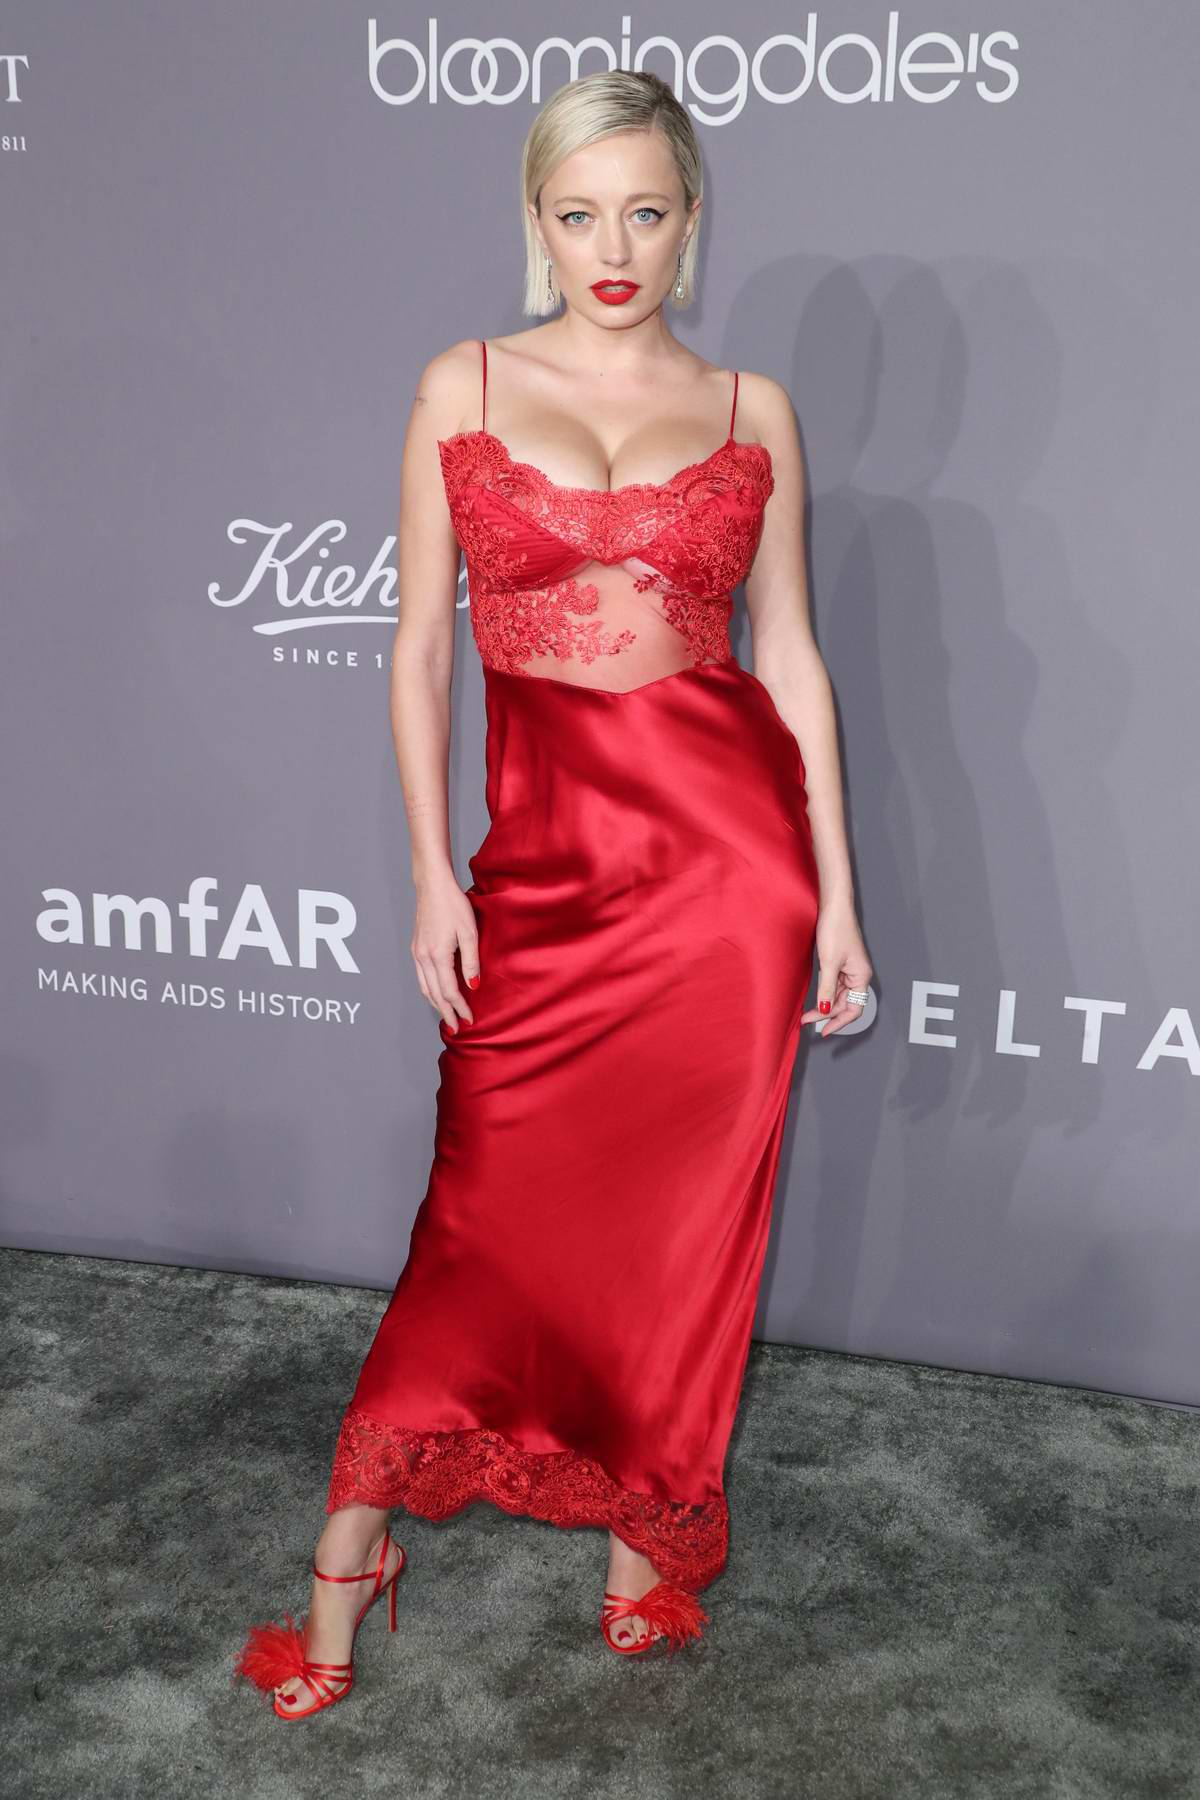 Caroline Vreeland attends 2018 amfAR Gala New York at Cipriani Wall Street in New York City